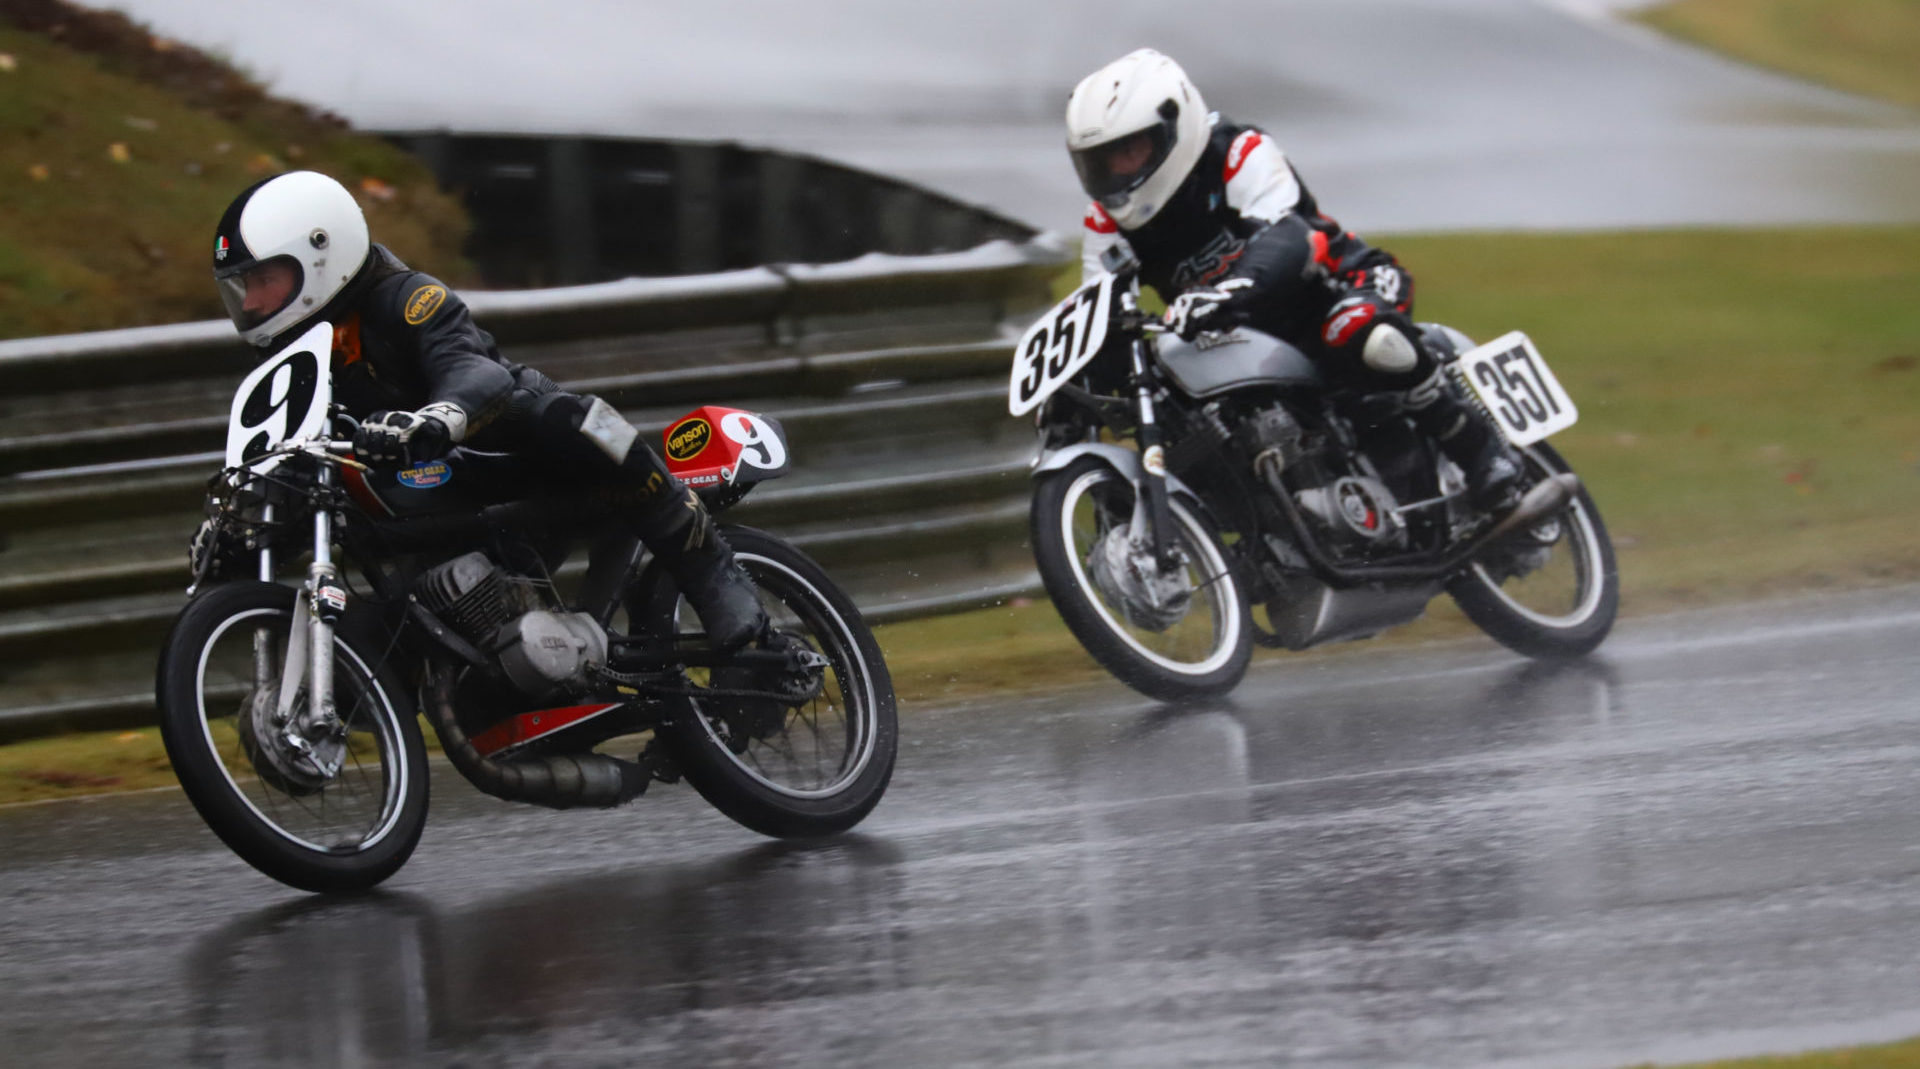 AHRMA racers Colton Roberts (9) and Joe Koury (357) at speed in the wet at Barber Motorsports Park. Photo by etechphoto.com, courtesy AHRMA.